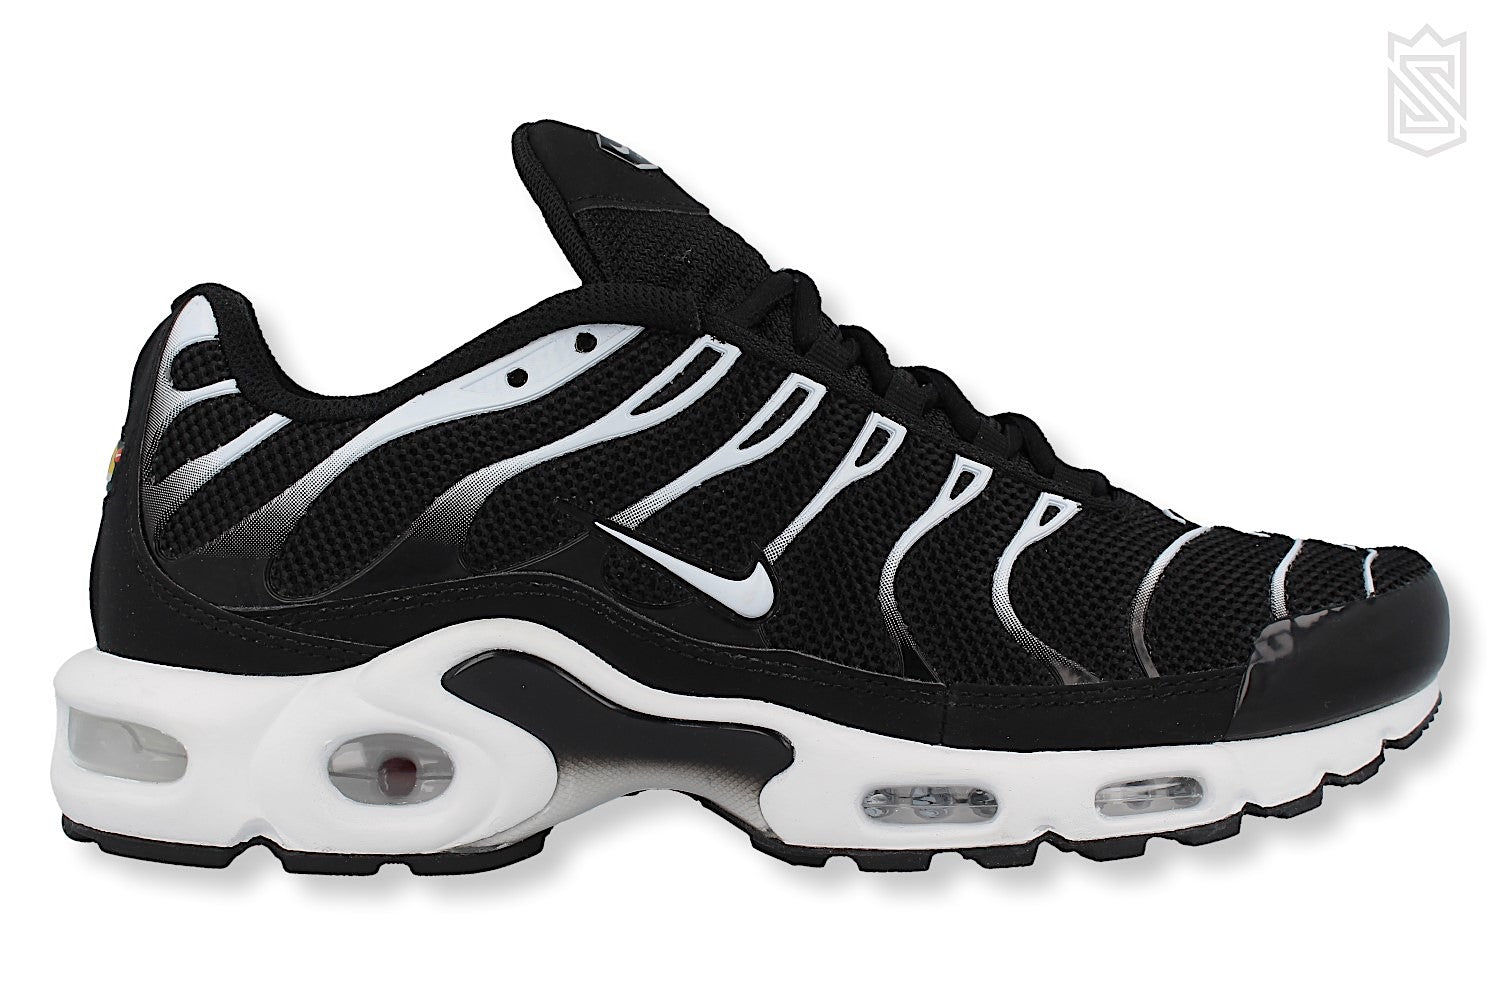 Nike Air Max Plus – Schrittmacher Sneakerhandlung